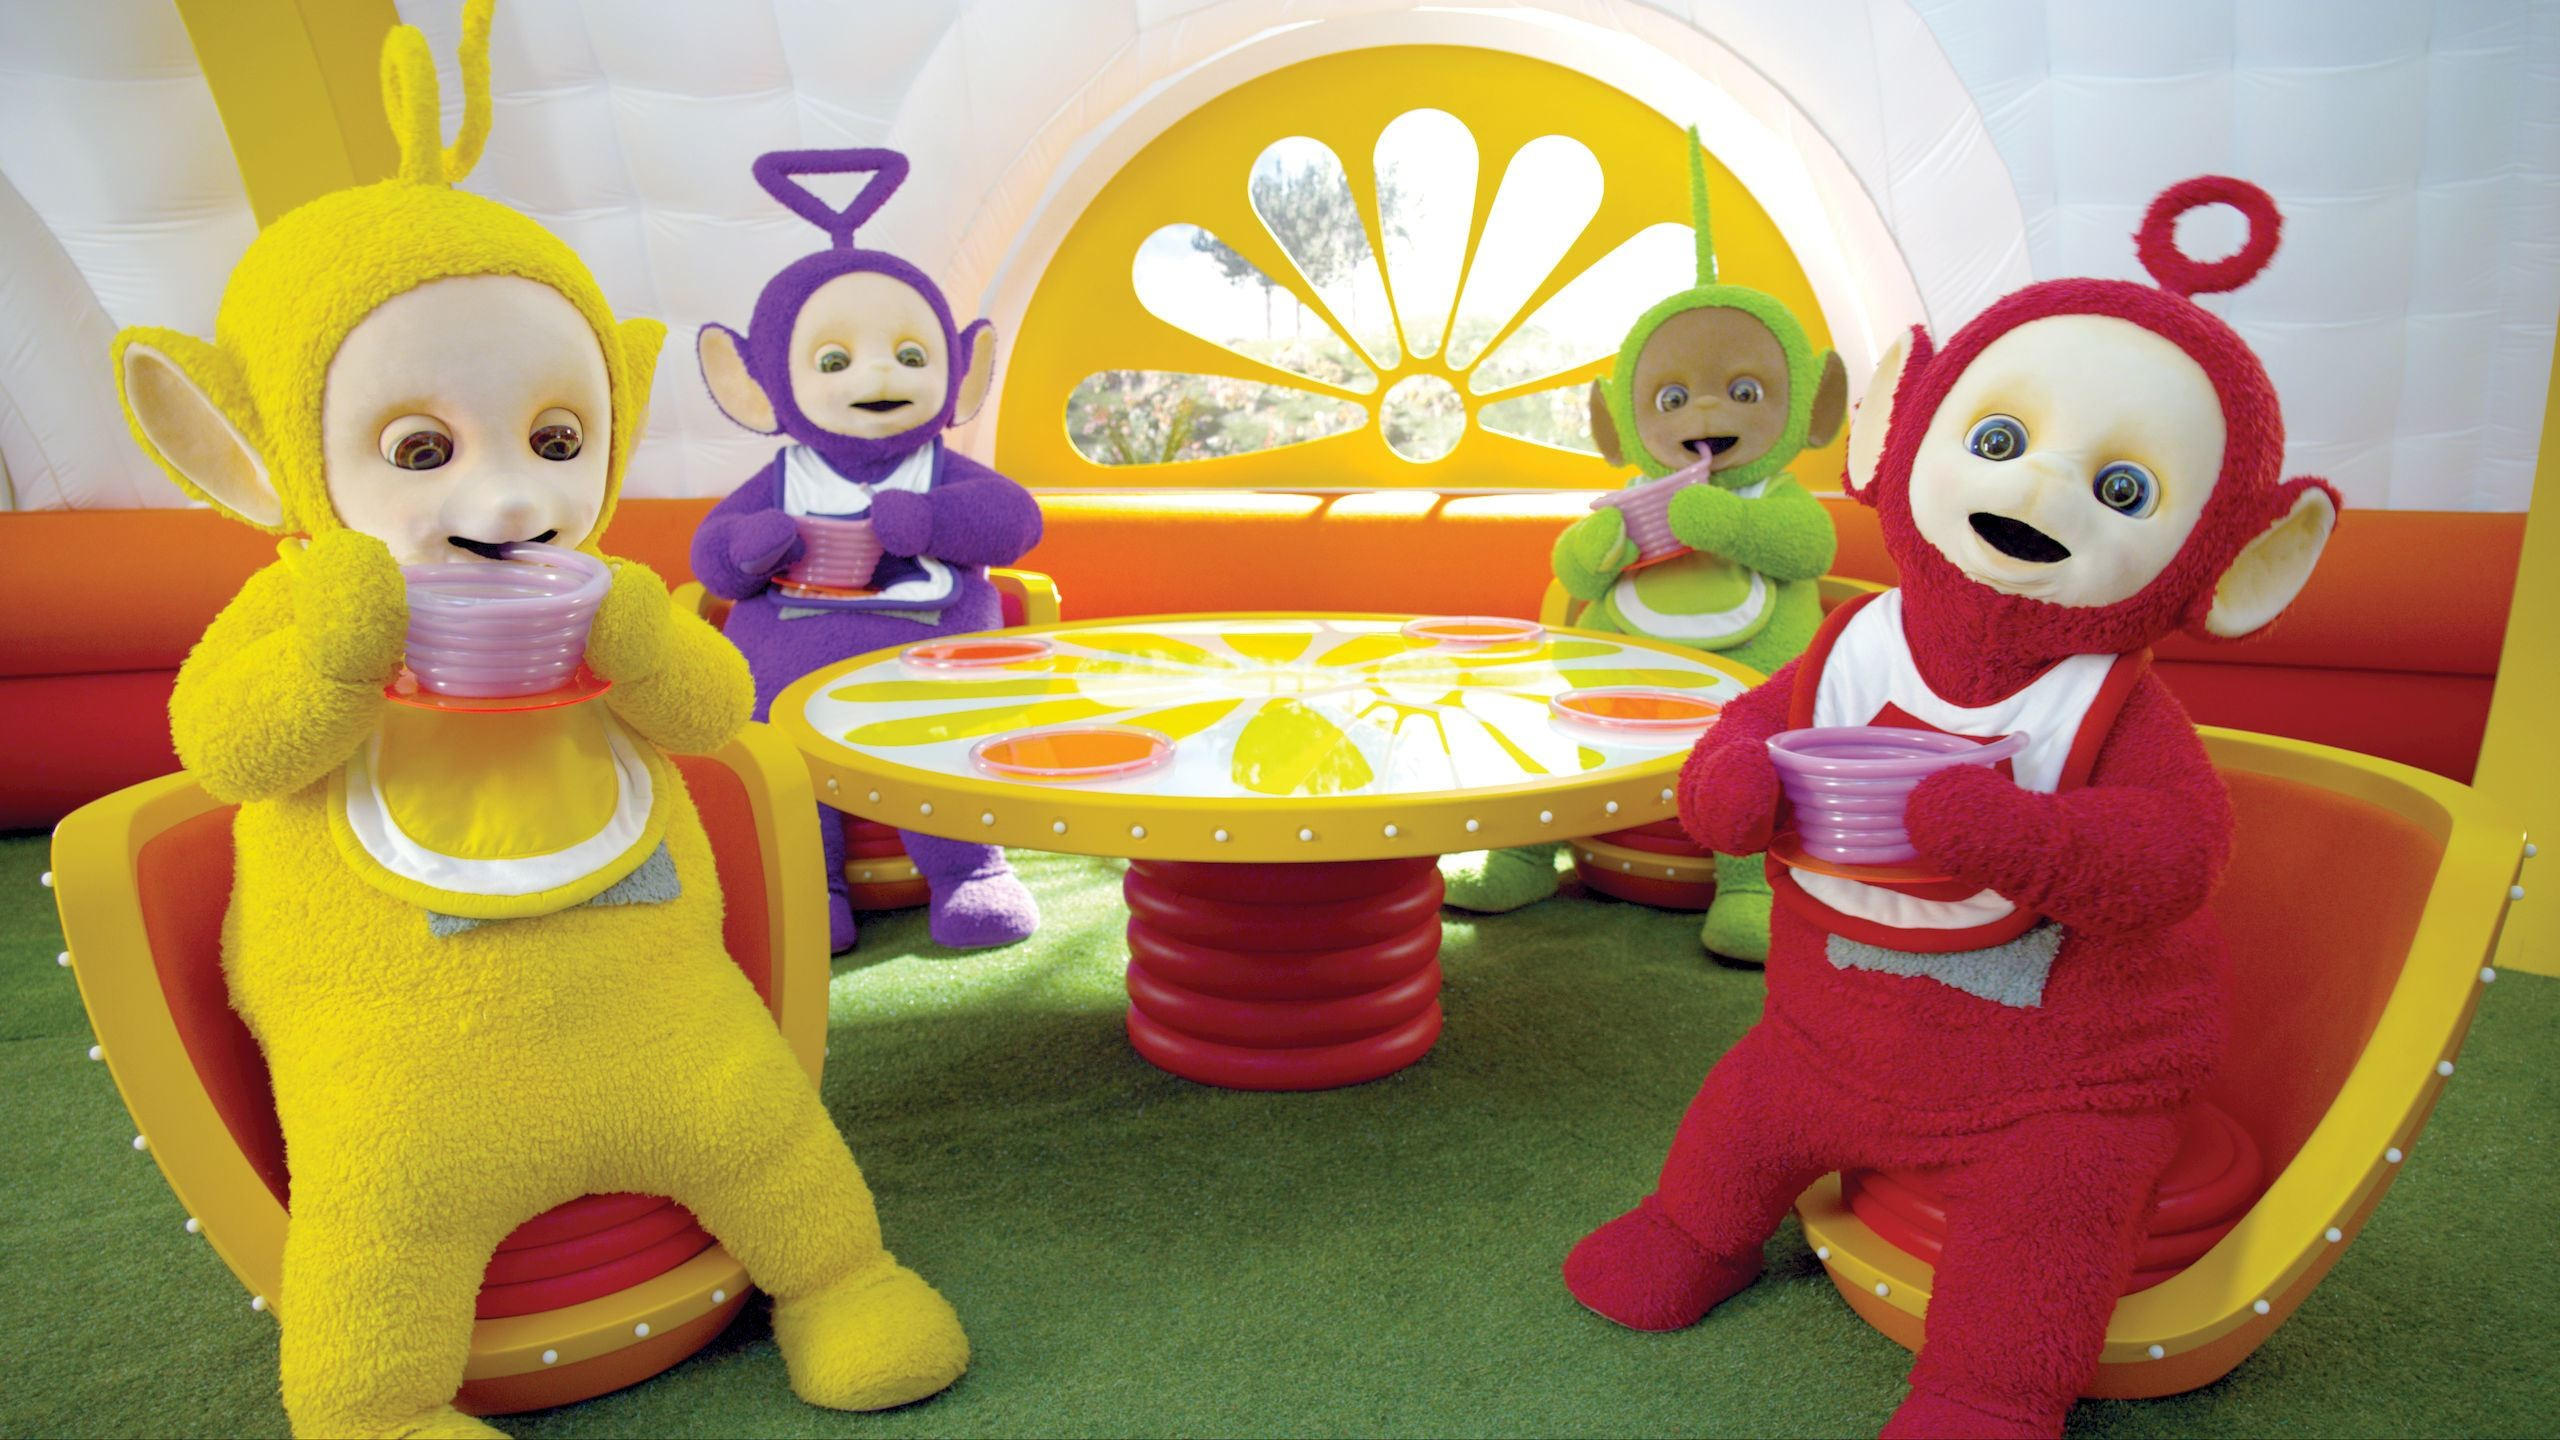 Teletubbies Wallpaper 183 ① Wallpapertag